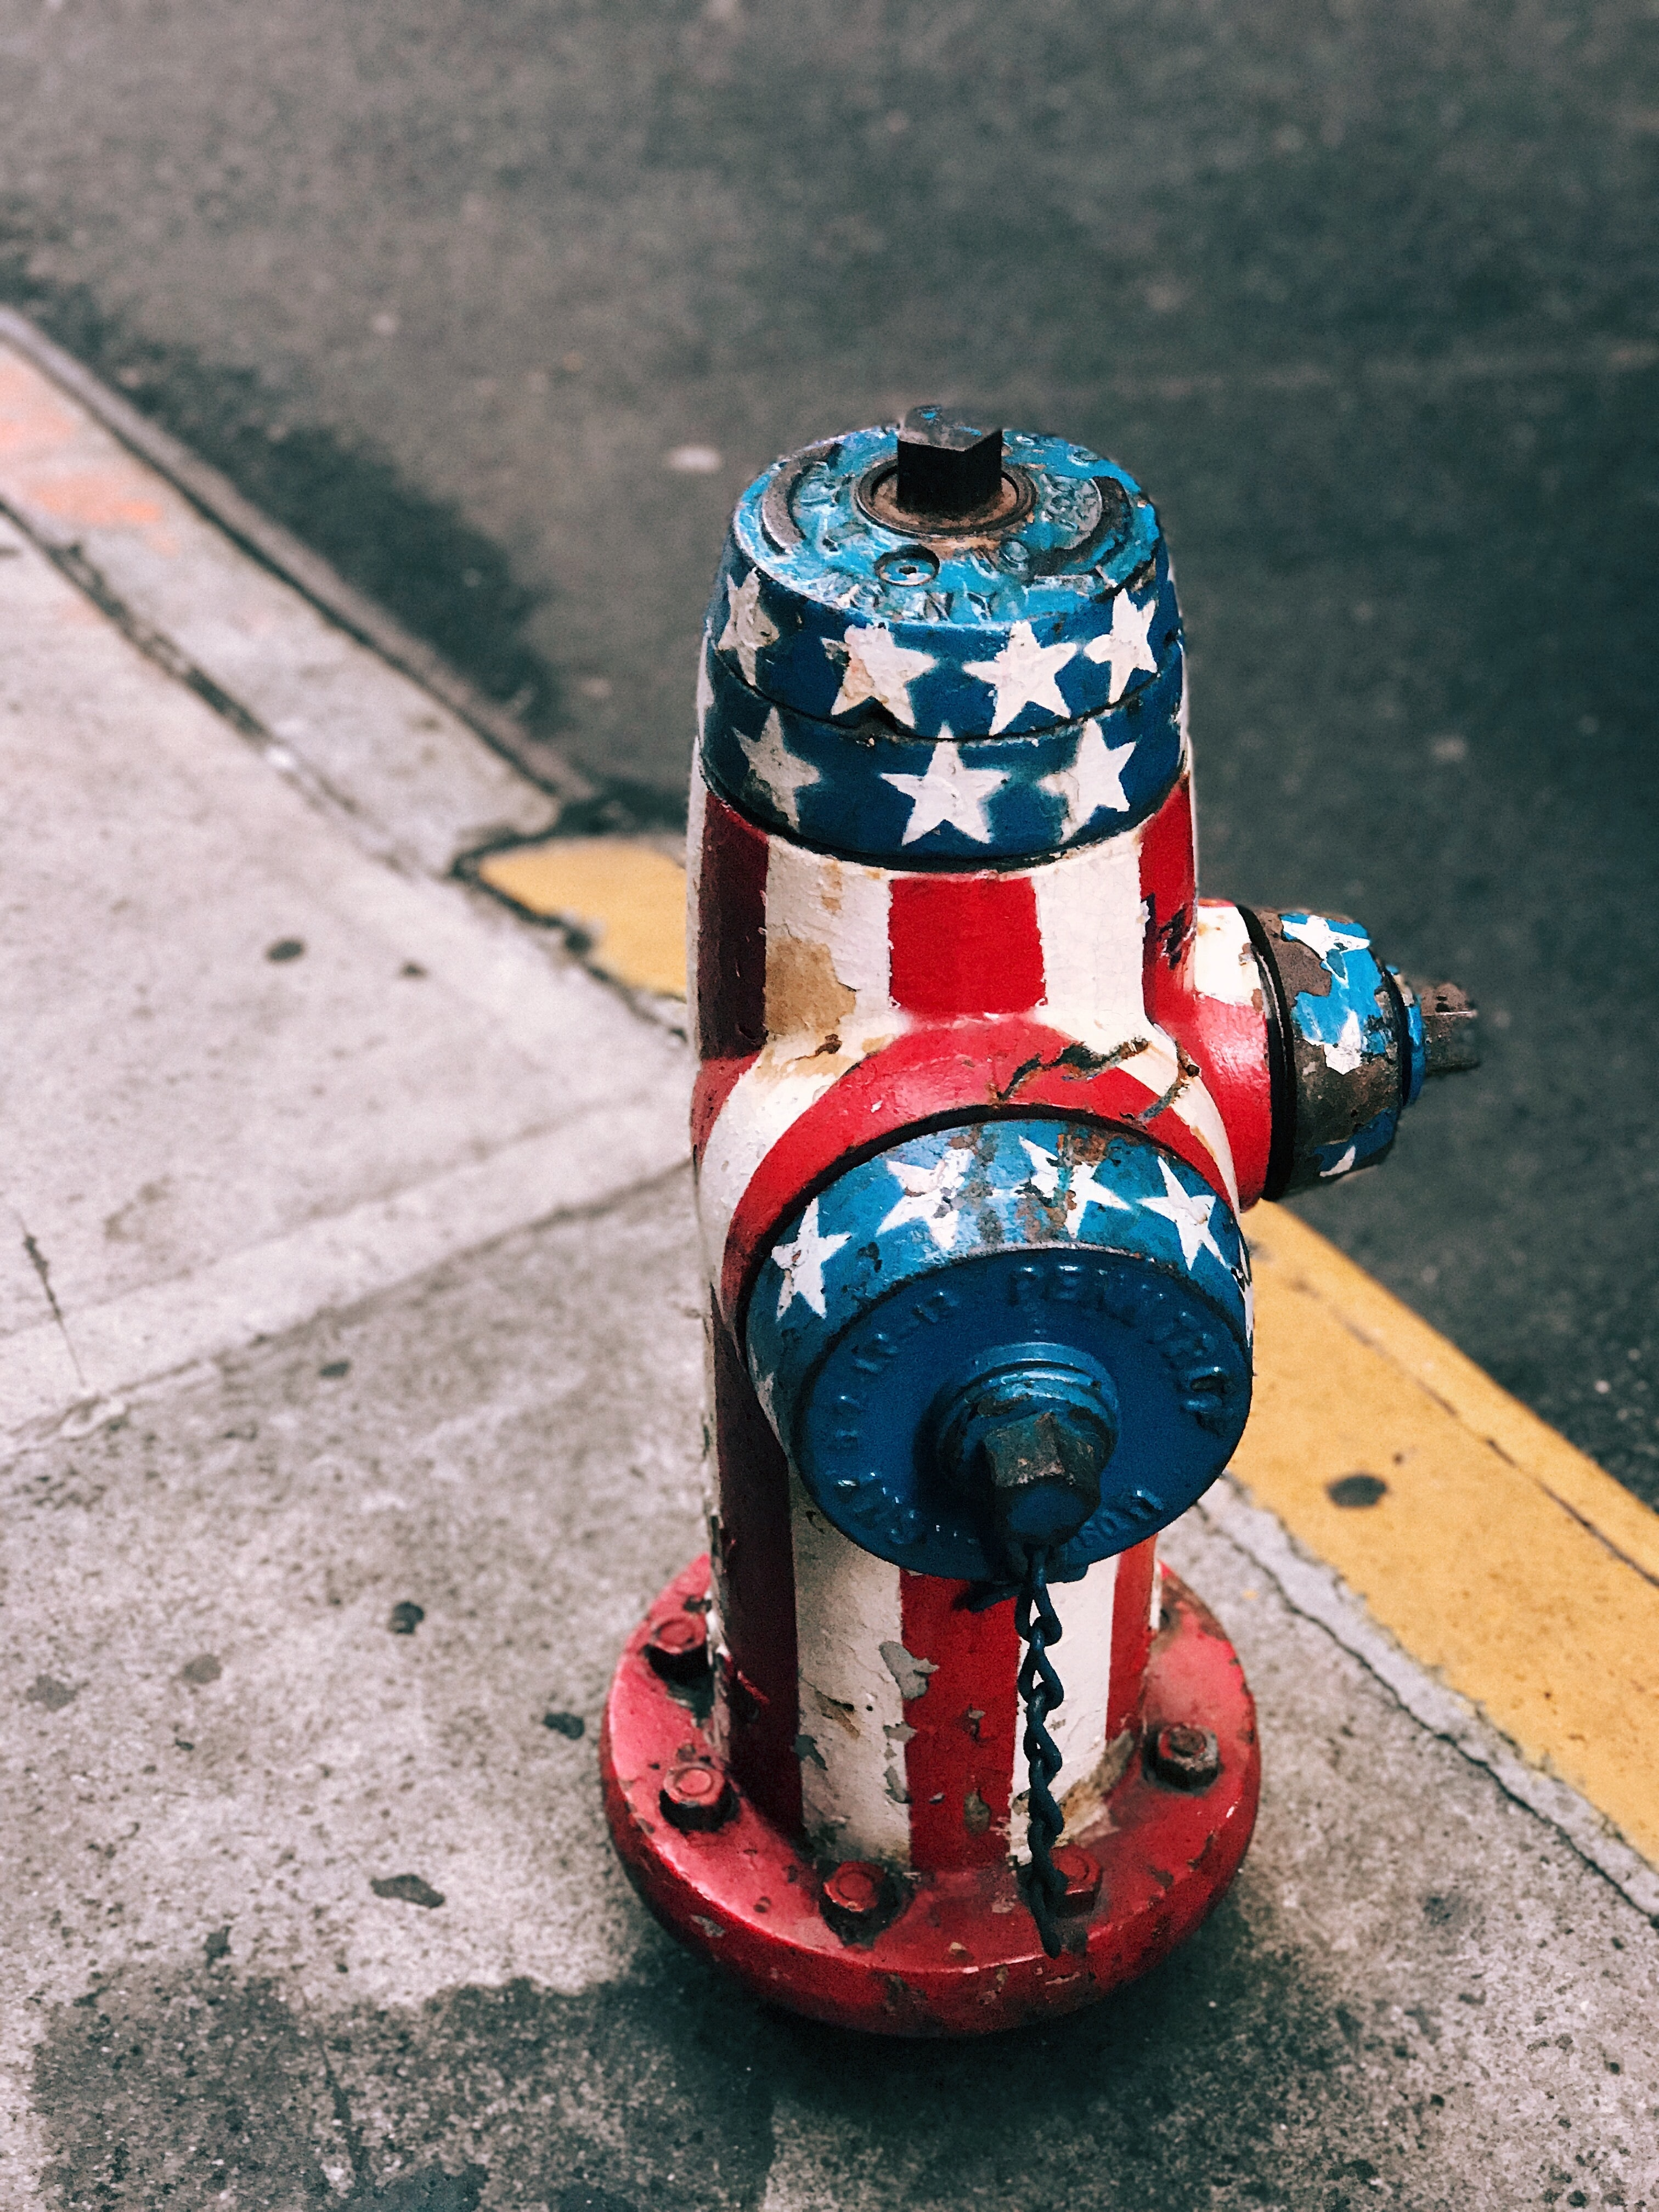 multicolored American flag painted fire hydrant at daytime